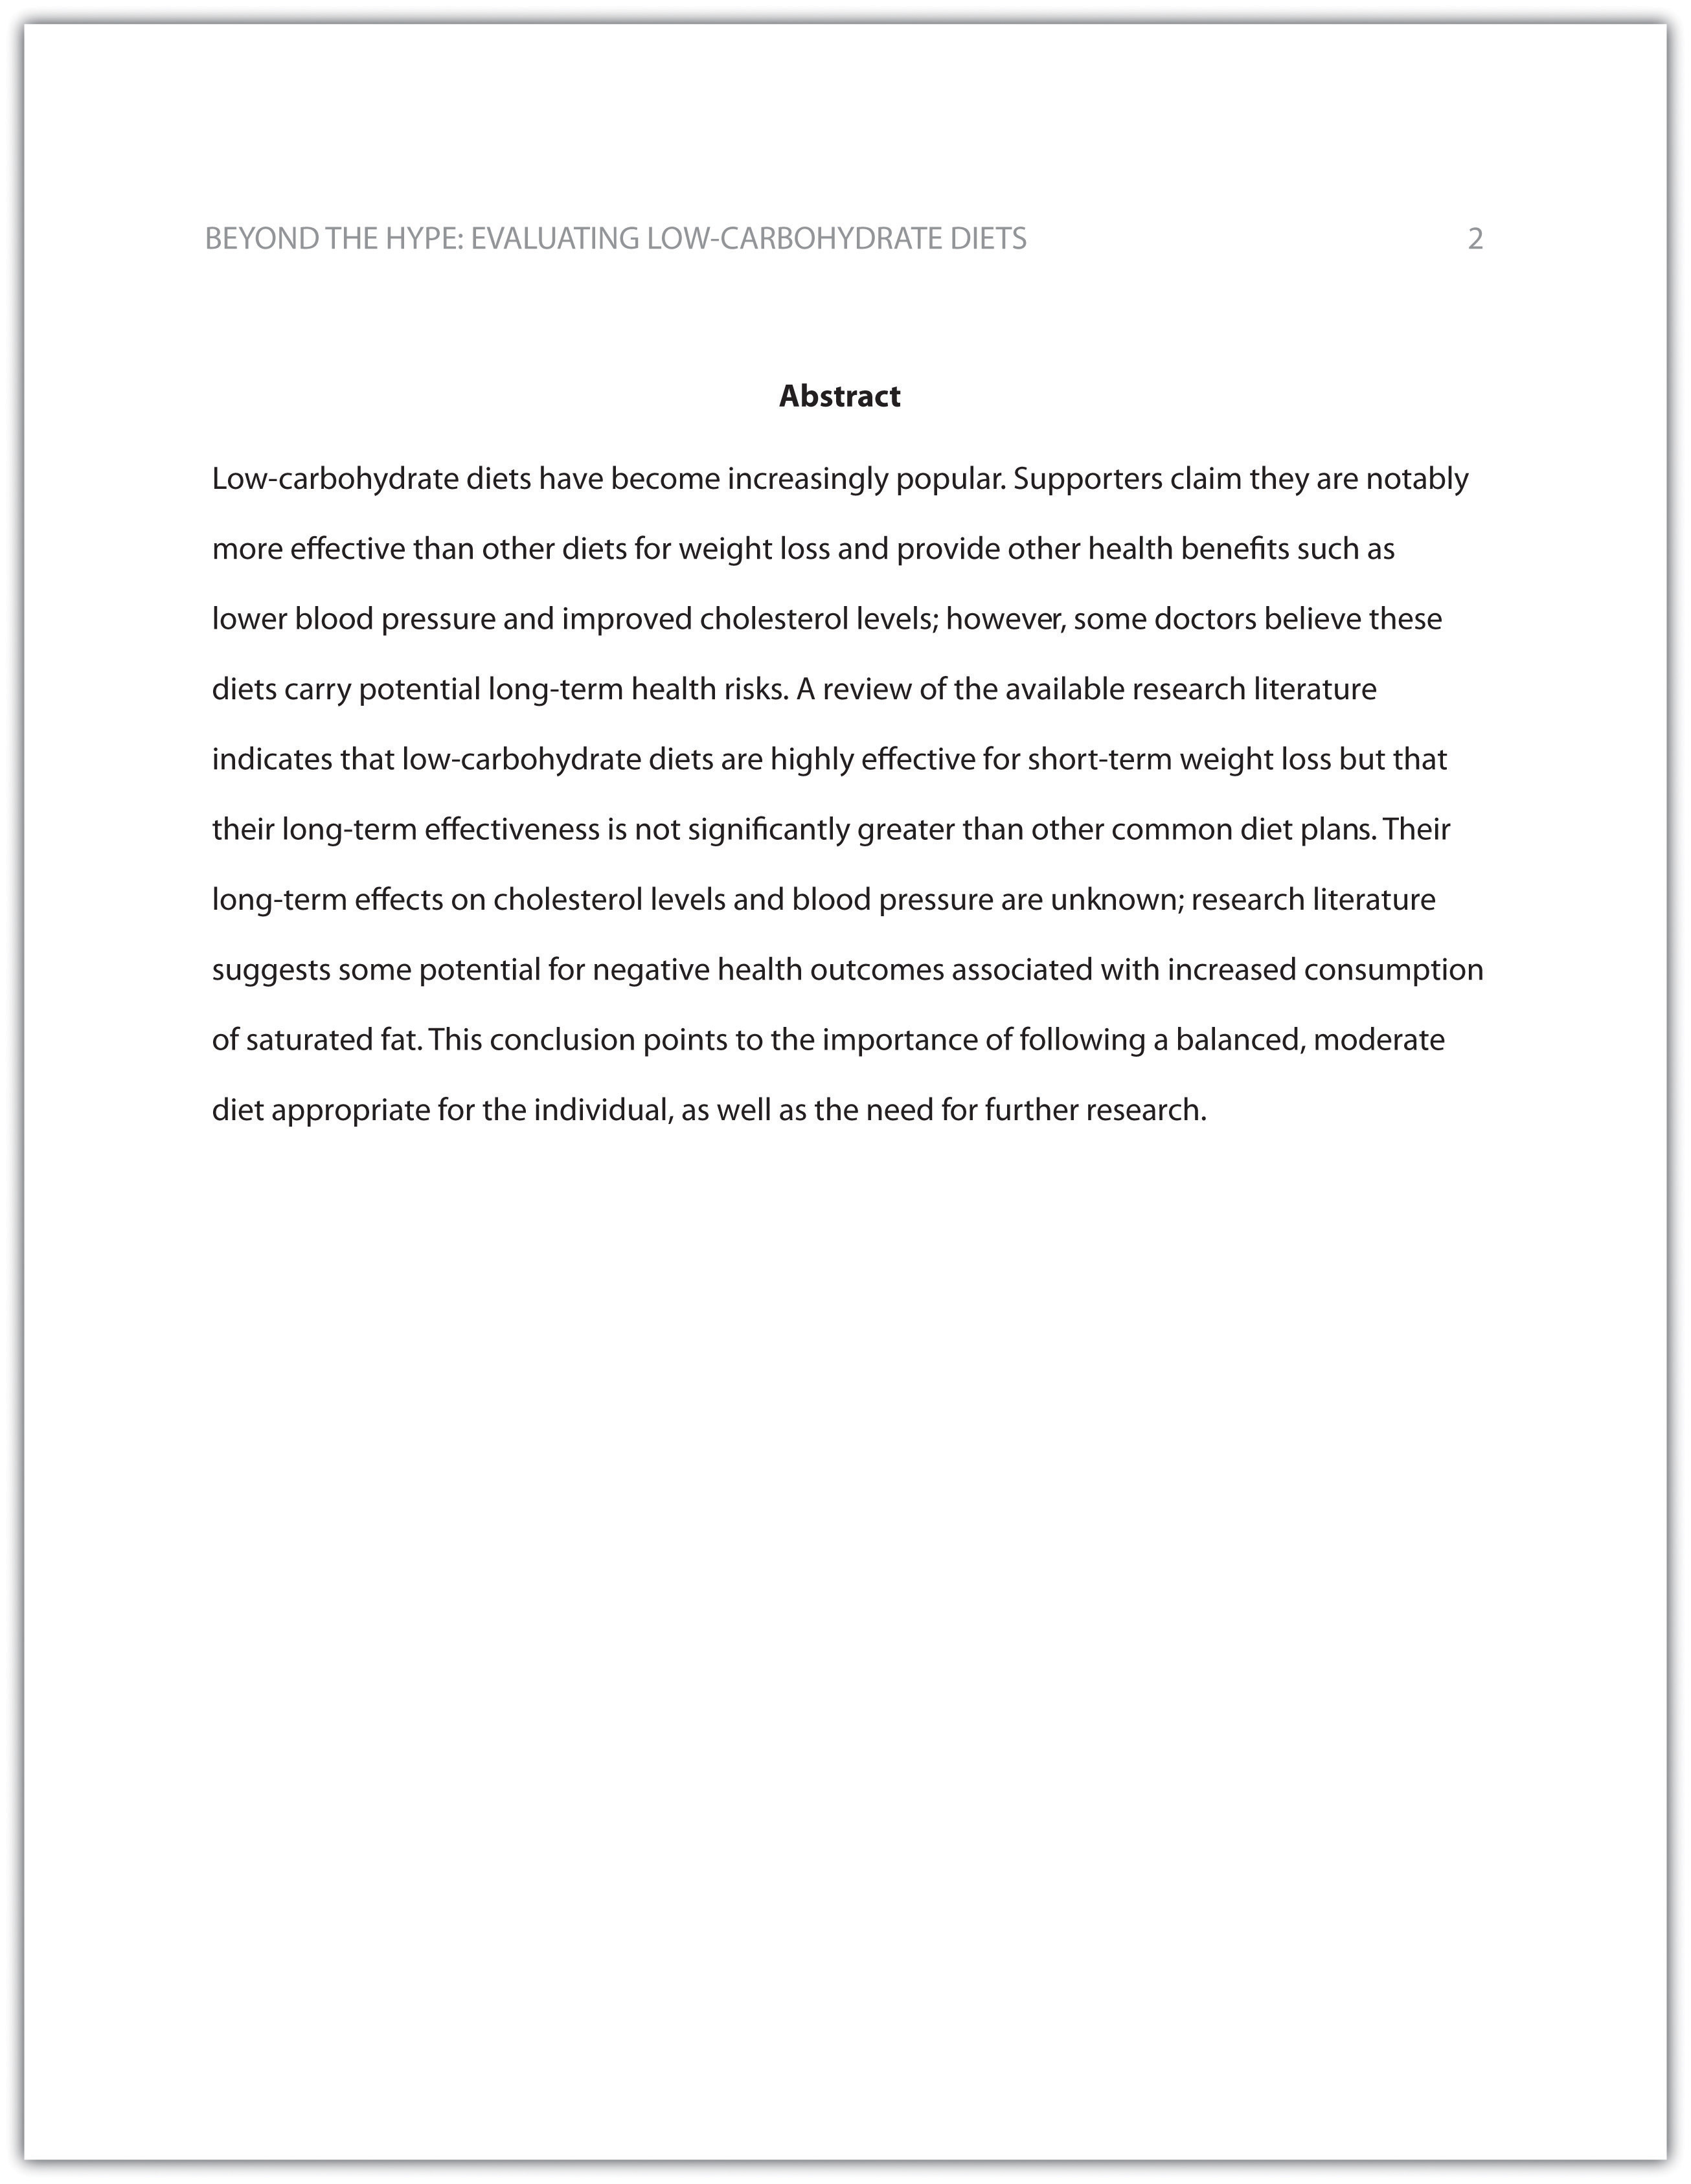 004 Research Paper How To Write An Abstract For Purdue Magnificent A Owl Writing Apa Examples Full